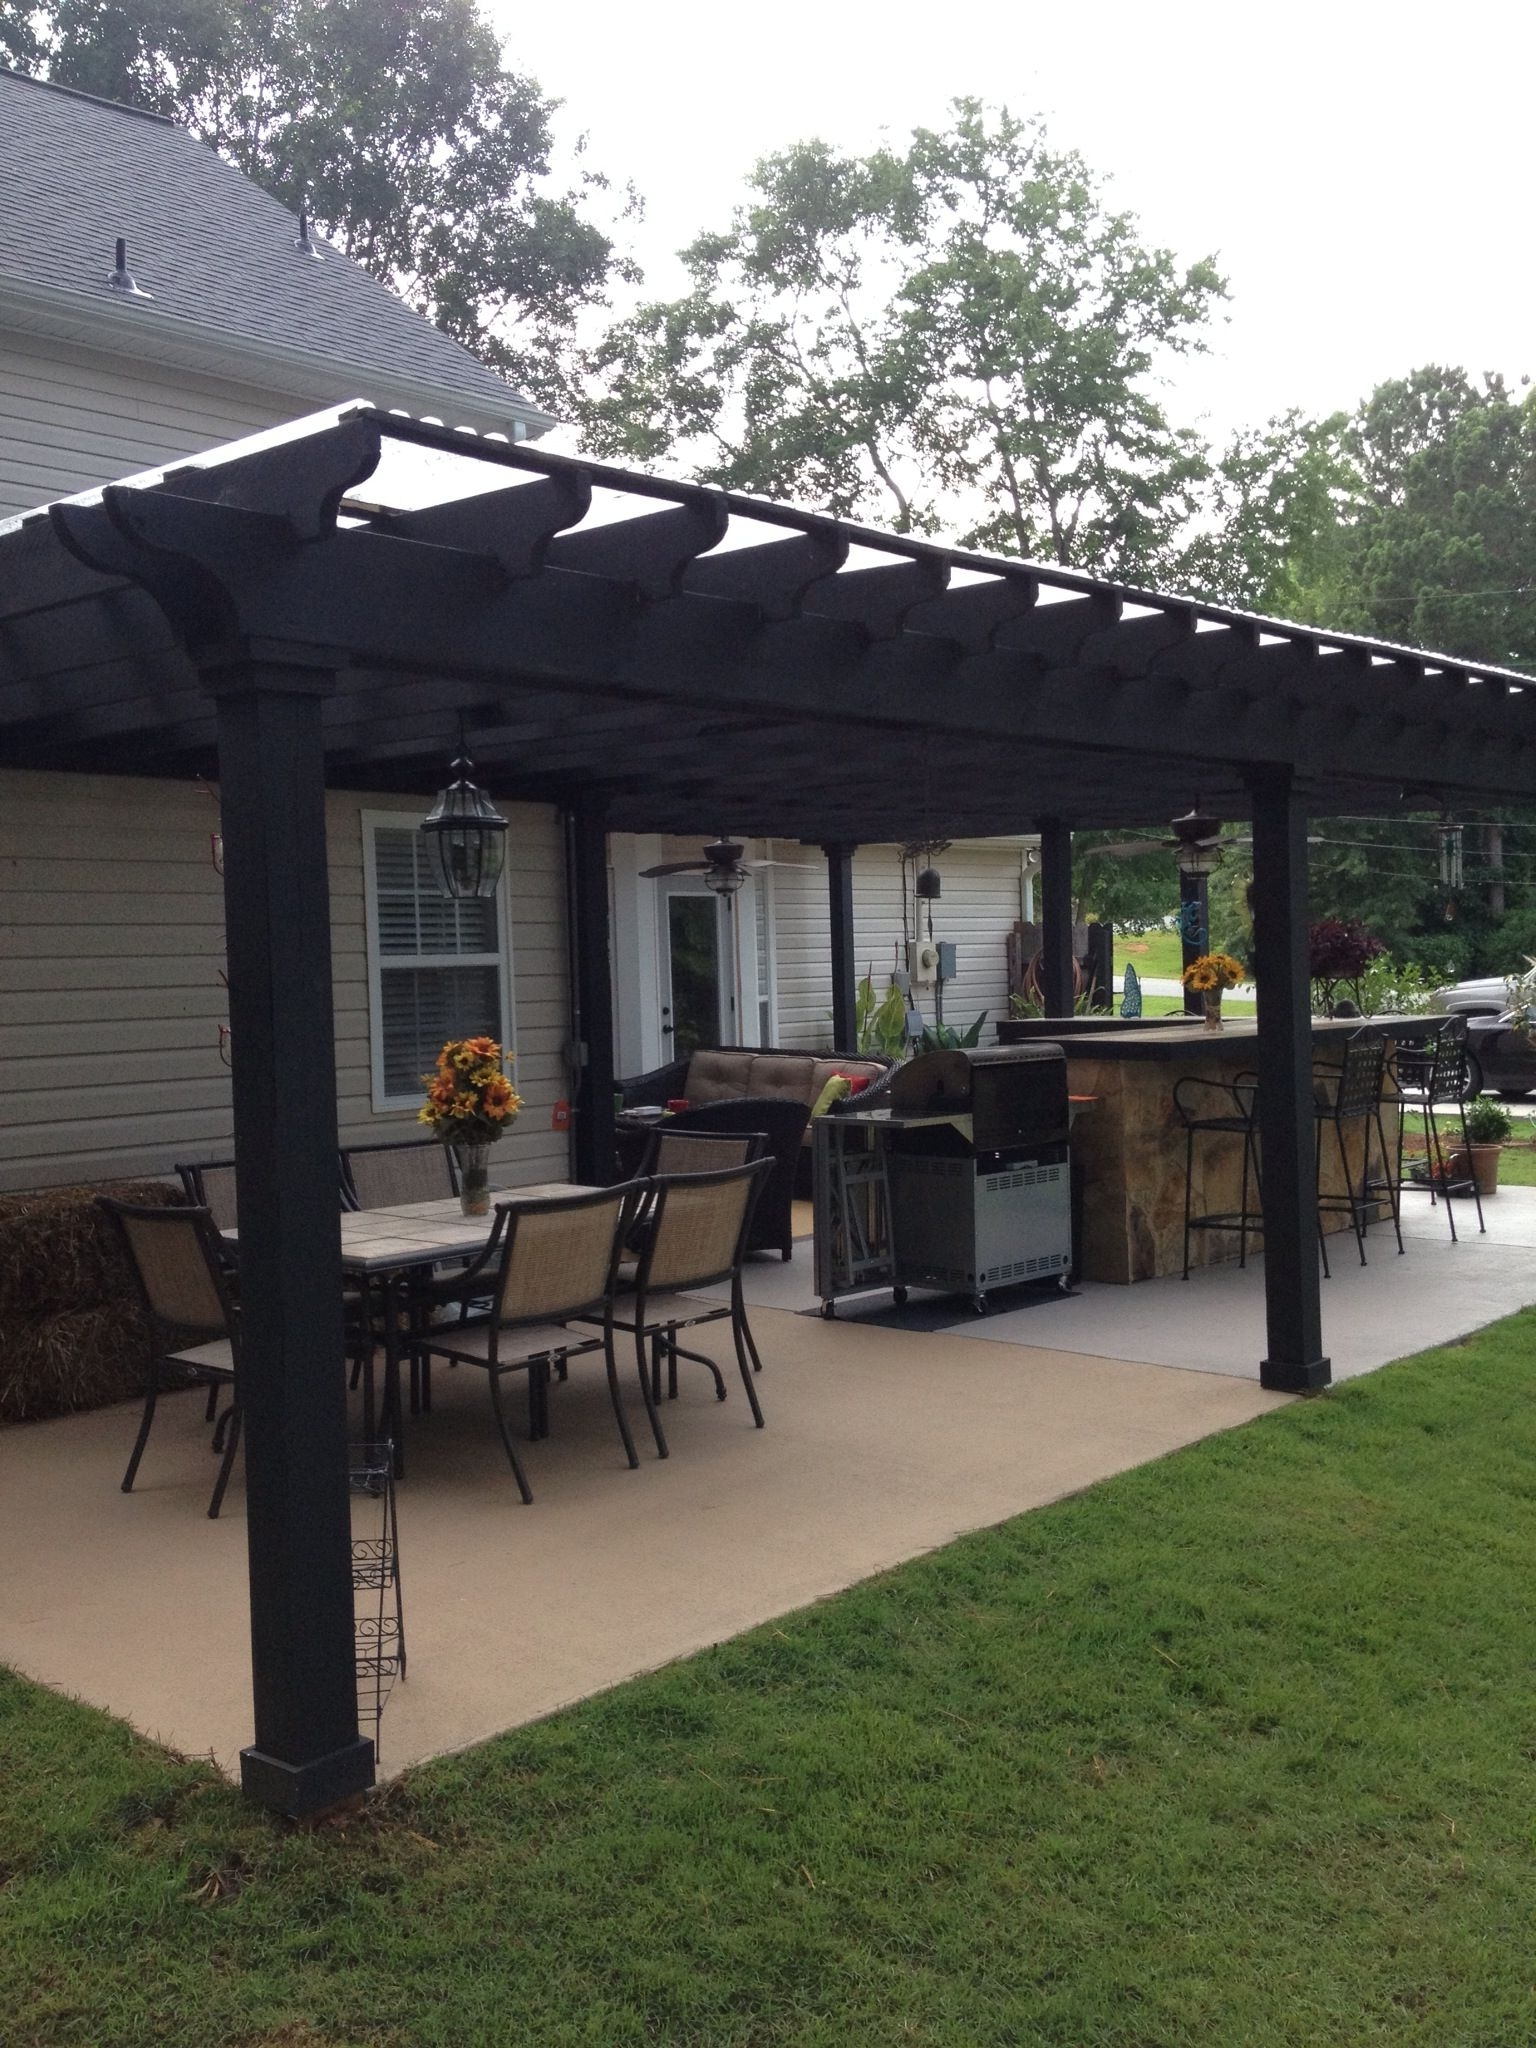 Famous Outdoor Ceiling Fans Under Pergola In I Like This Open Layout. Like The Pergola Over The Table, Grill, And (Gallery 12 of 20)